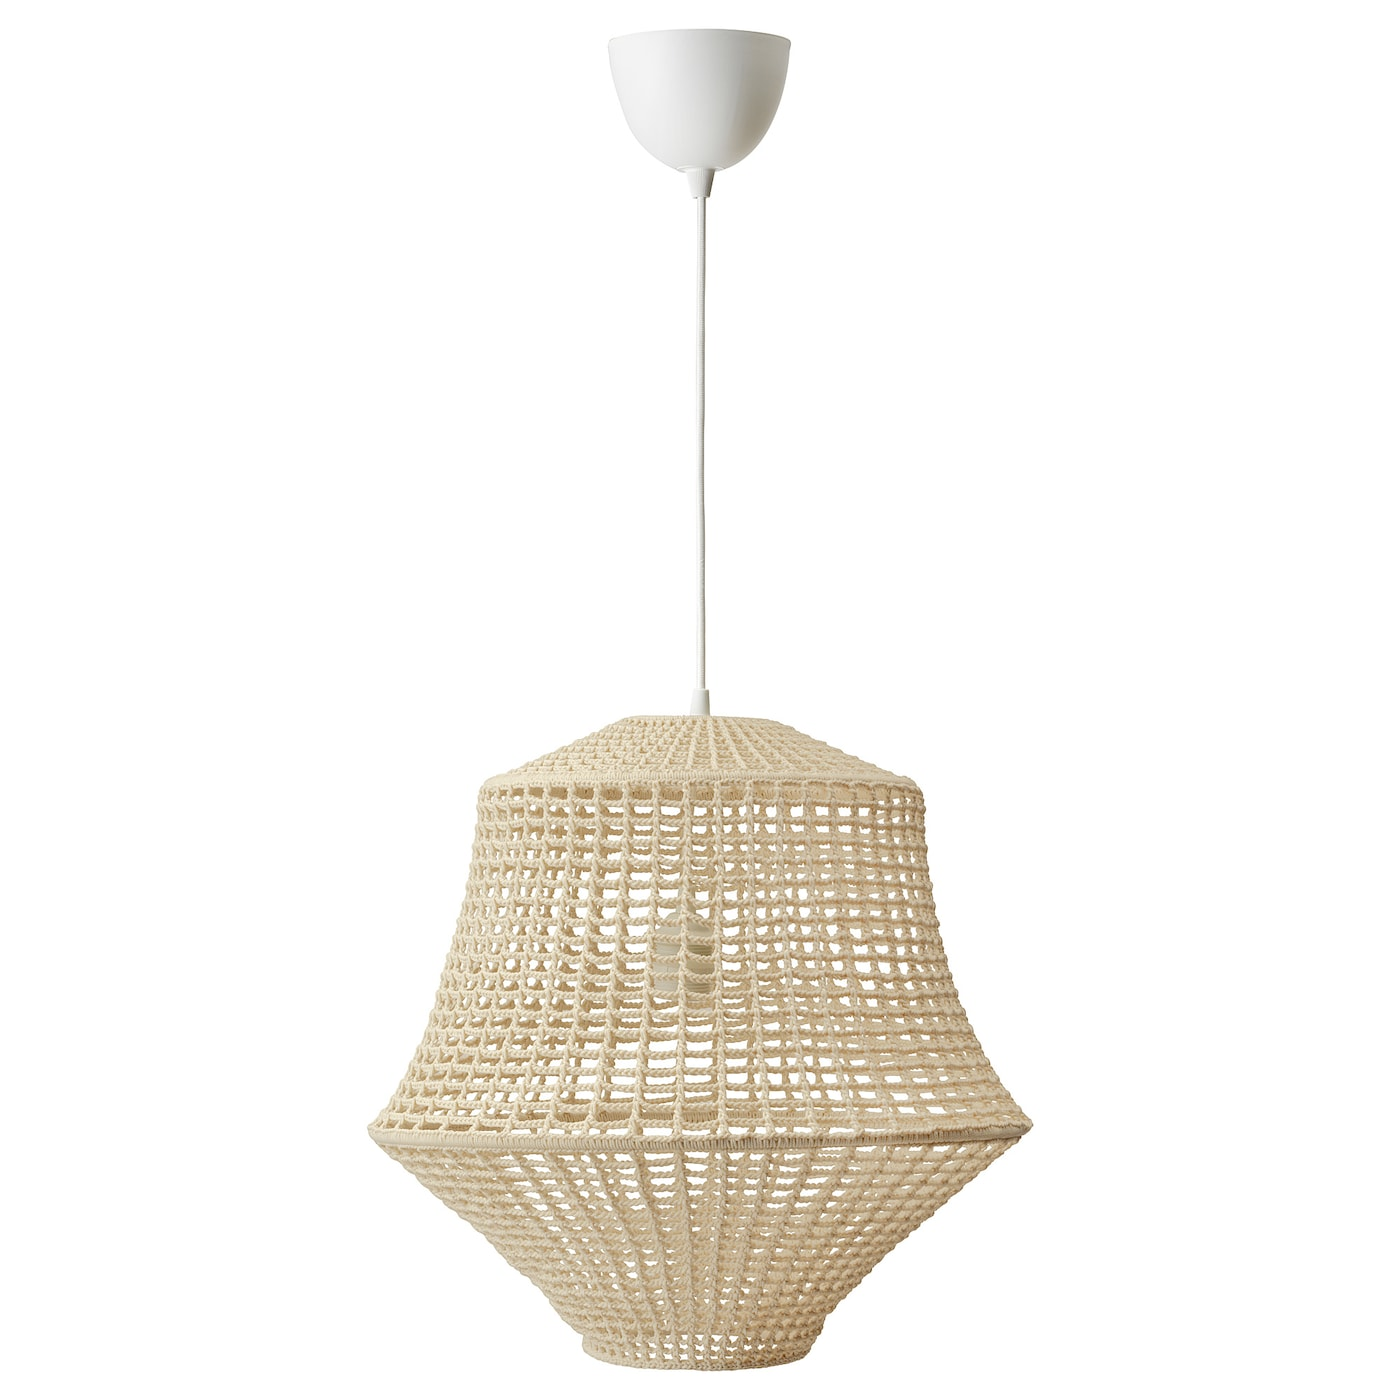 Ikea industriell pendant lamp easy to take home since the pendant lamp comes in a flat